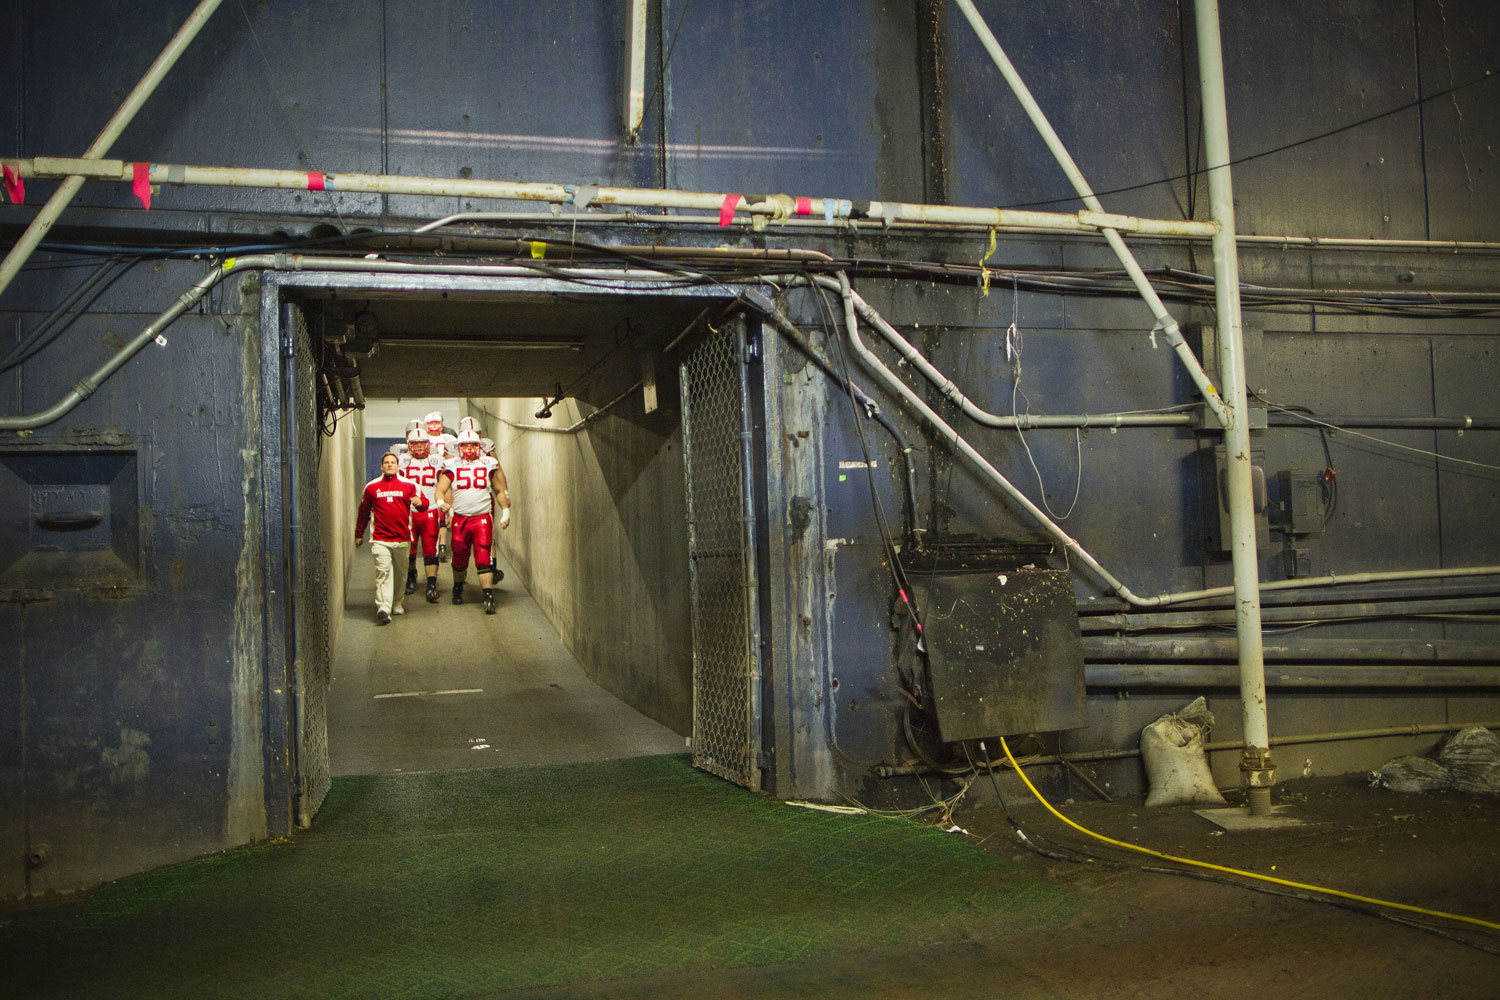 Husker offensive linemen enter the field before the Holiday Bowl in San Diego to play the University of Washington in December 2010.